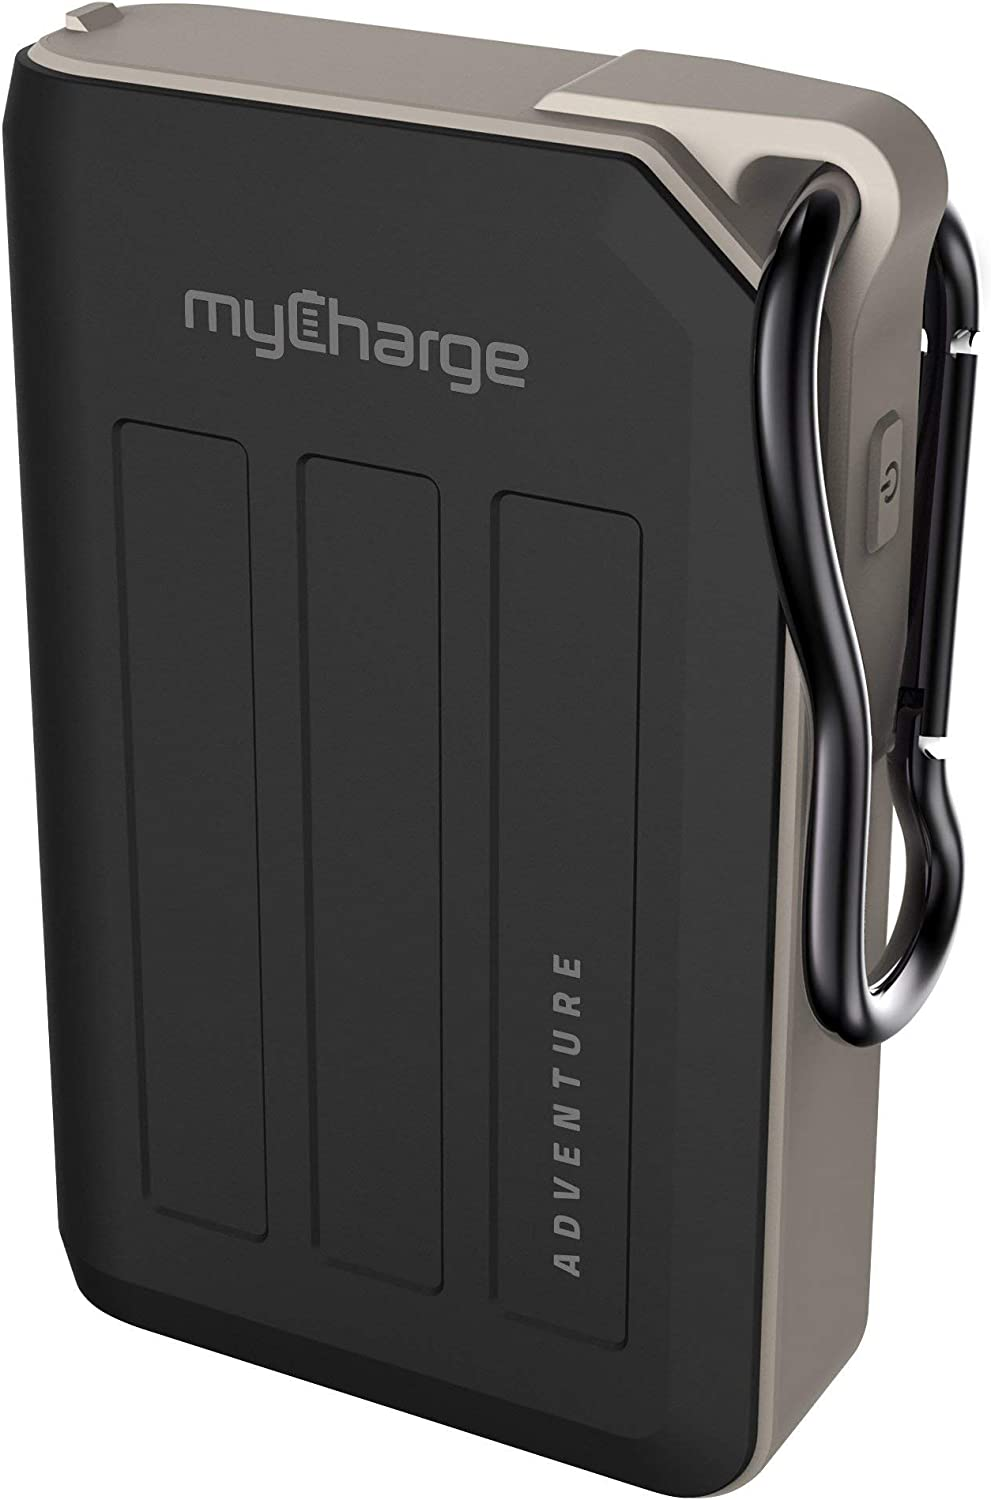 myCharge Adventure Camping Portable Charger Power C) 10050mAh (55 Hrs Power)